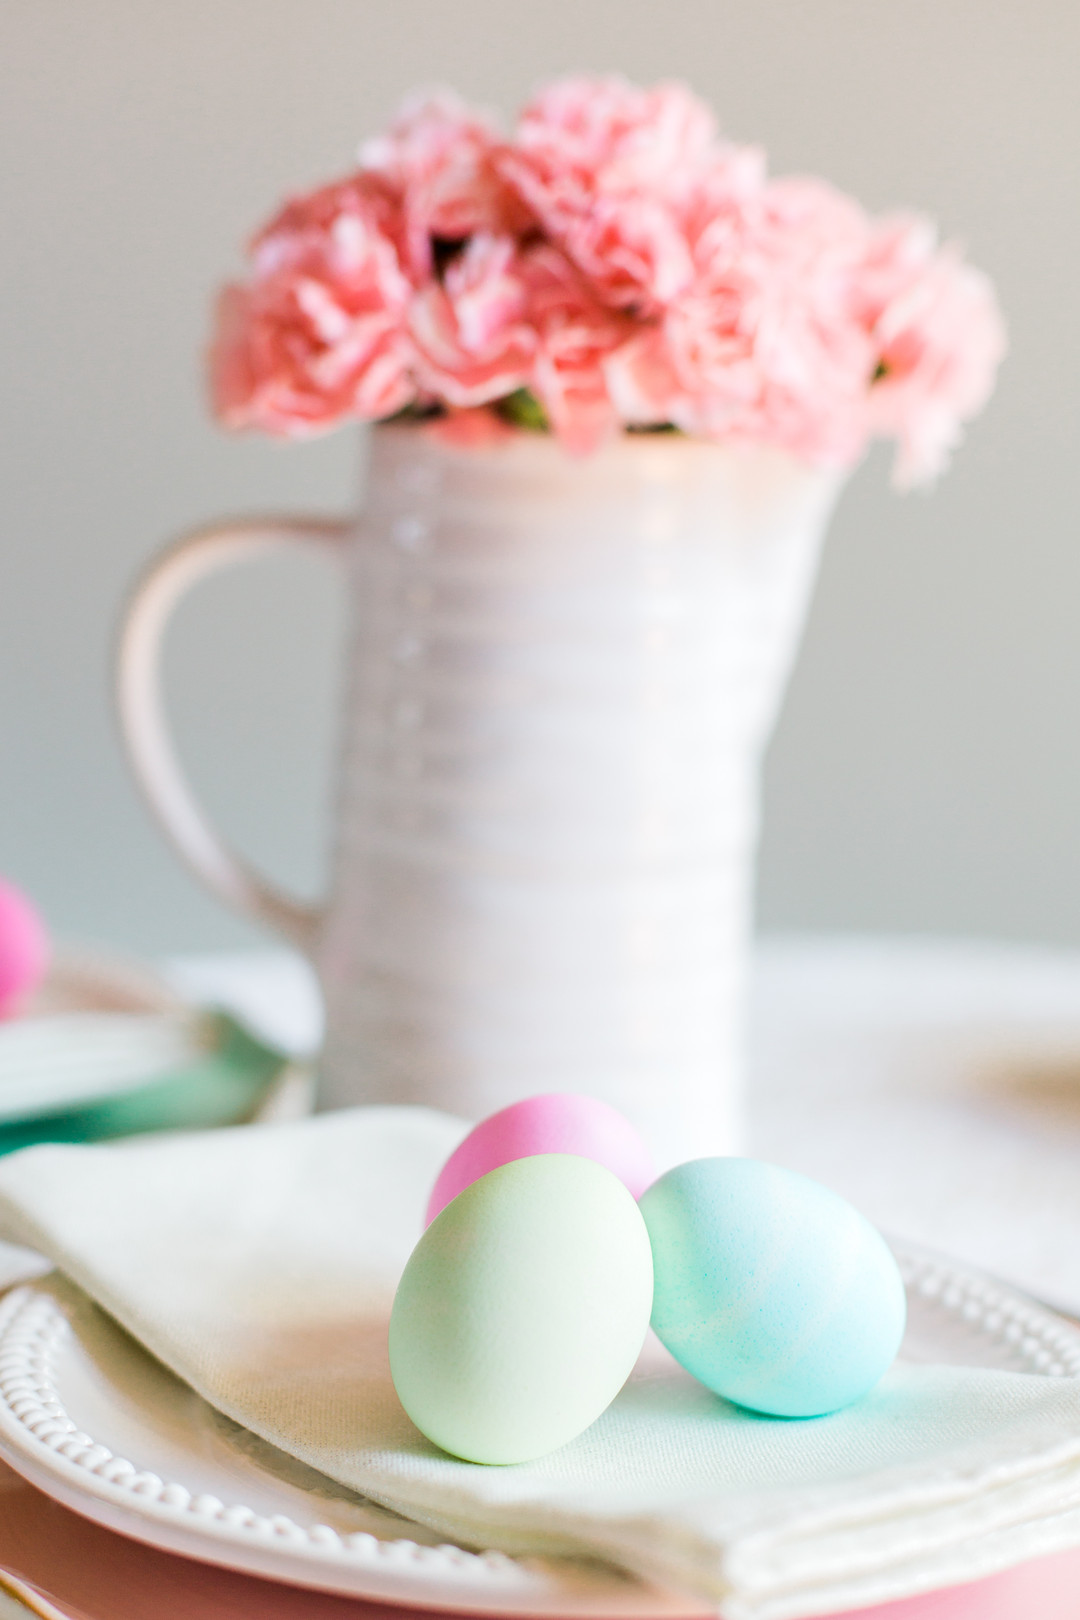 Staal_KristinaStaalPhotography_KristinaStaalPhotographyEasterTablescape201611_big Easy Entertaining: Easter Brunch Inspiration for Two